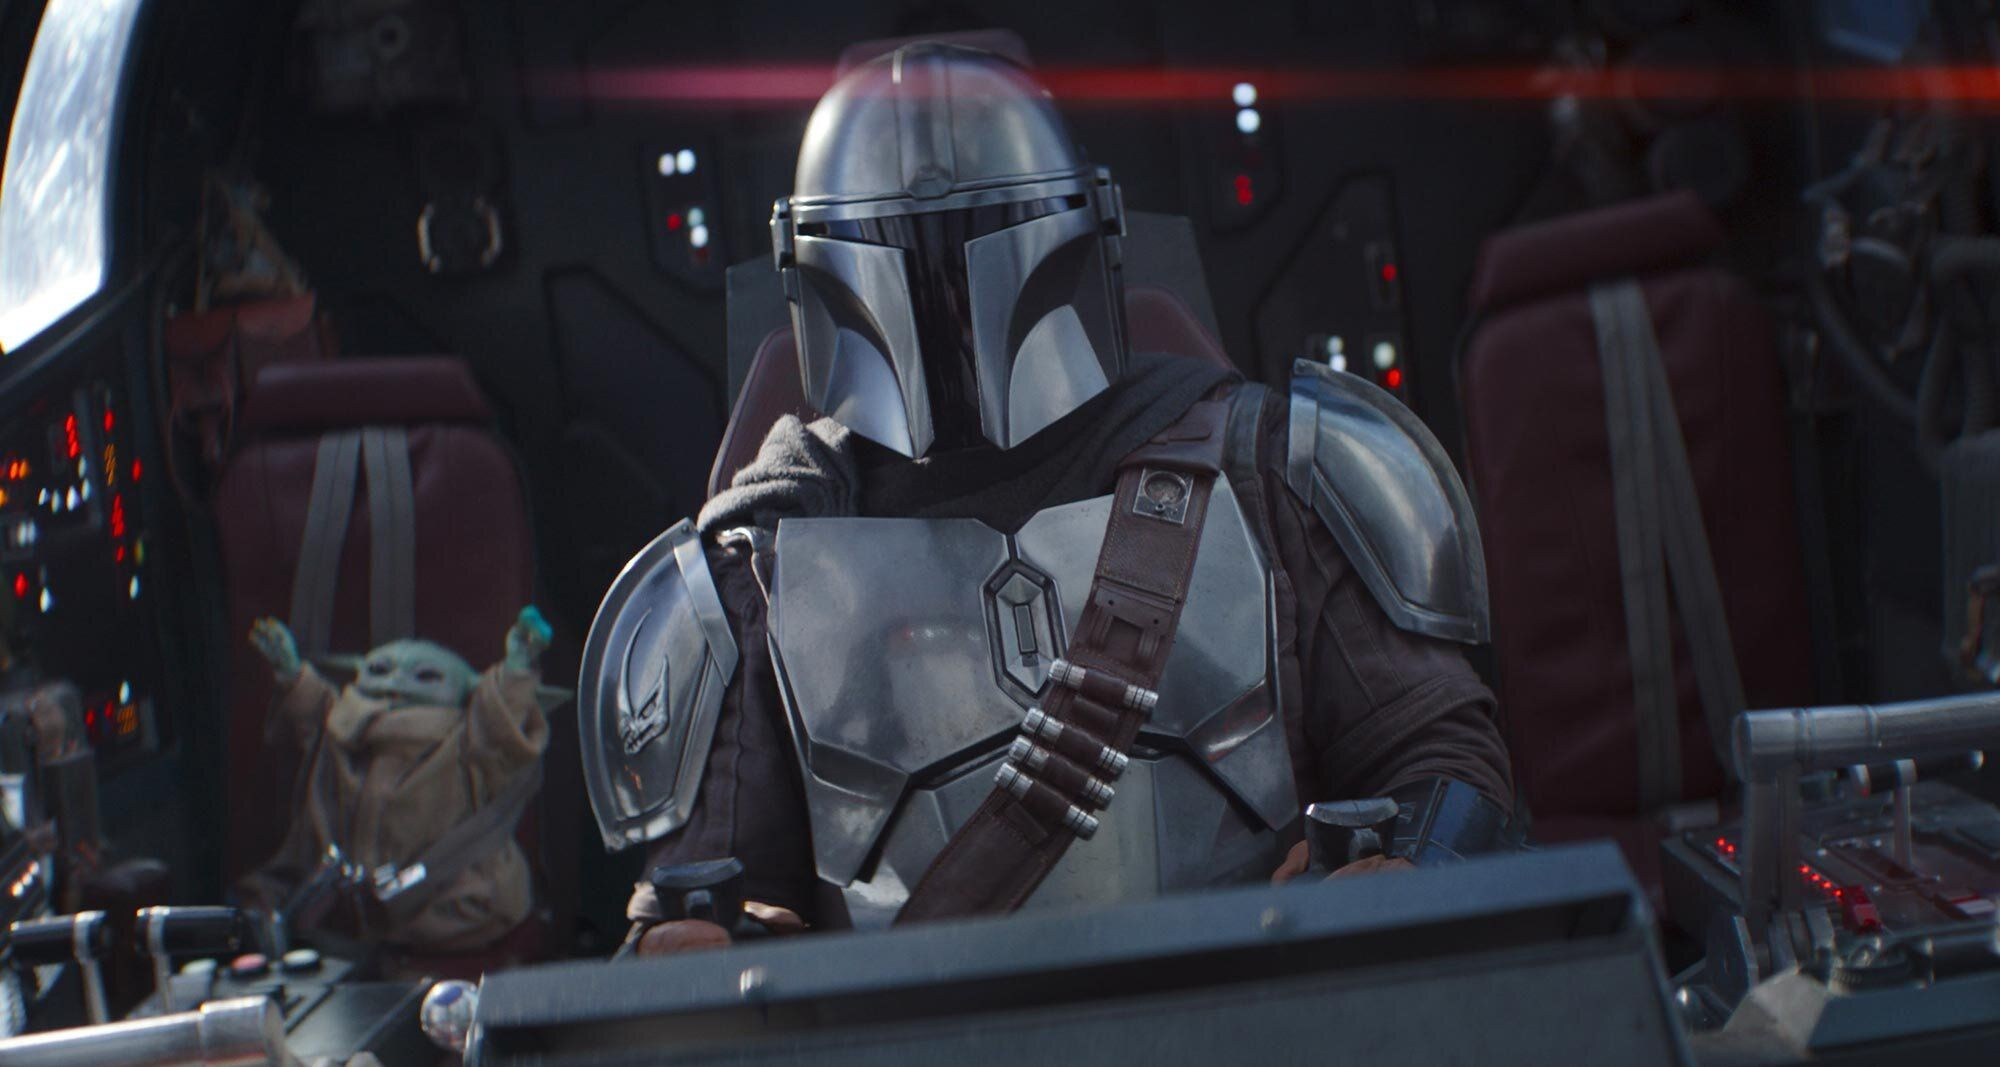 The Child and the Mandalorian (Pedro Pascal) in Lucasfilm's THE MANDALORIAN